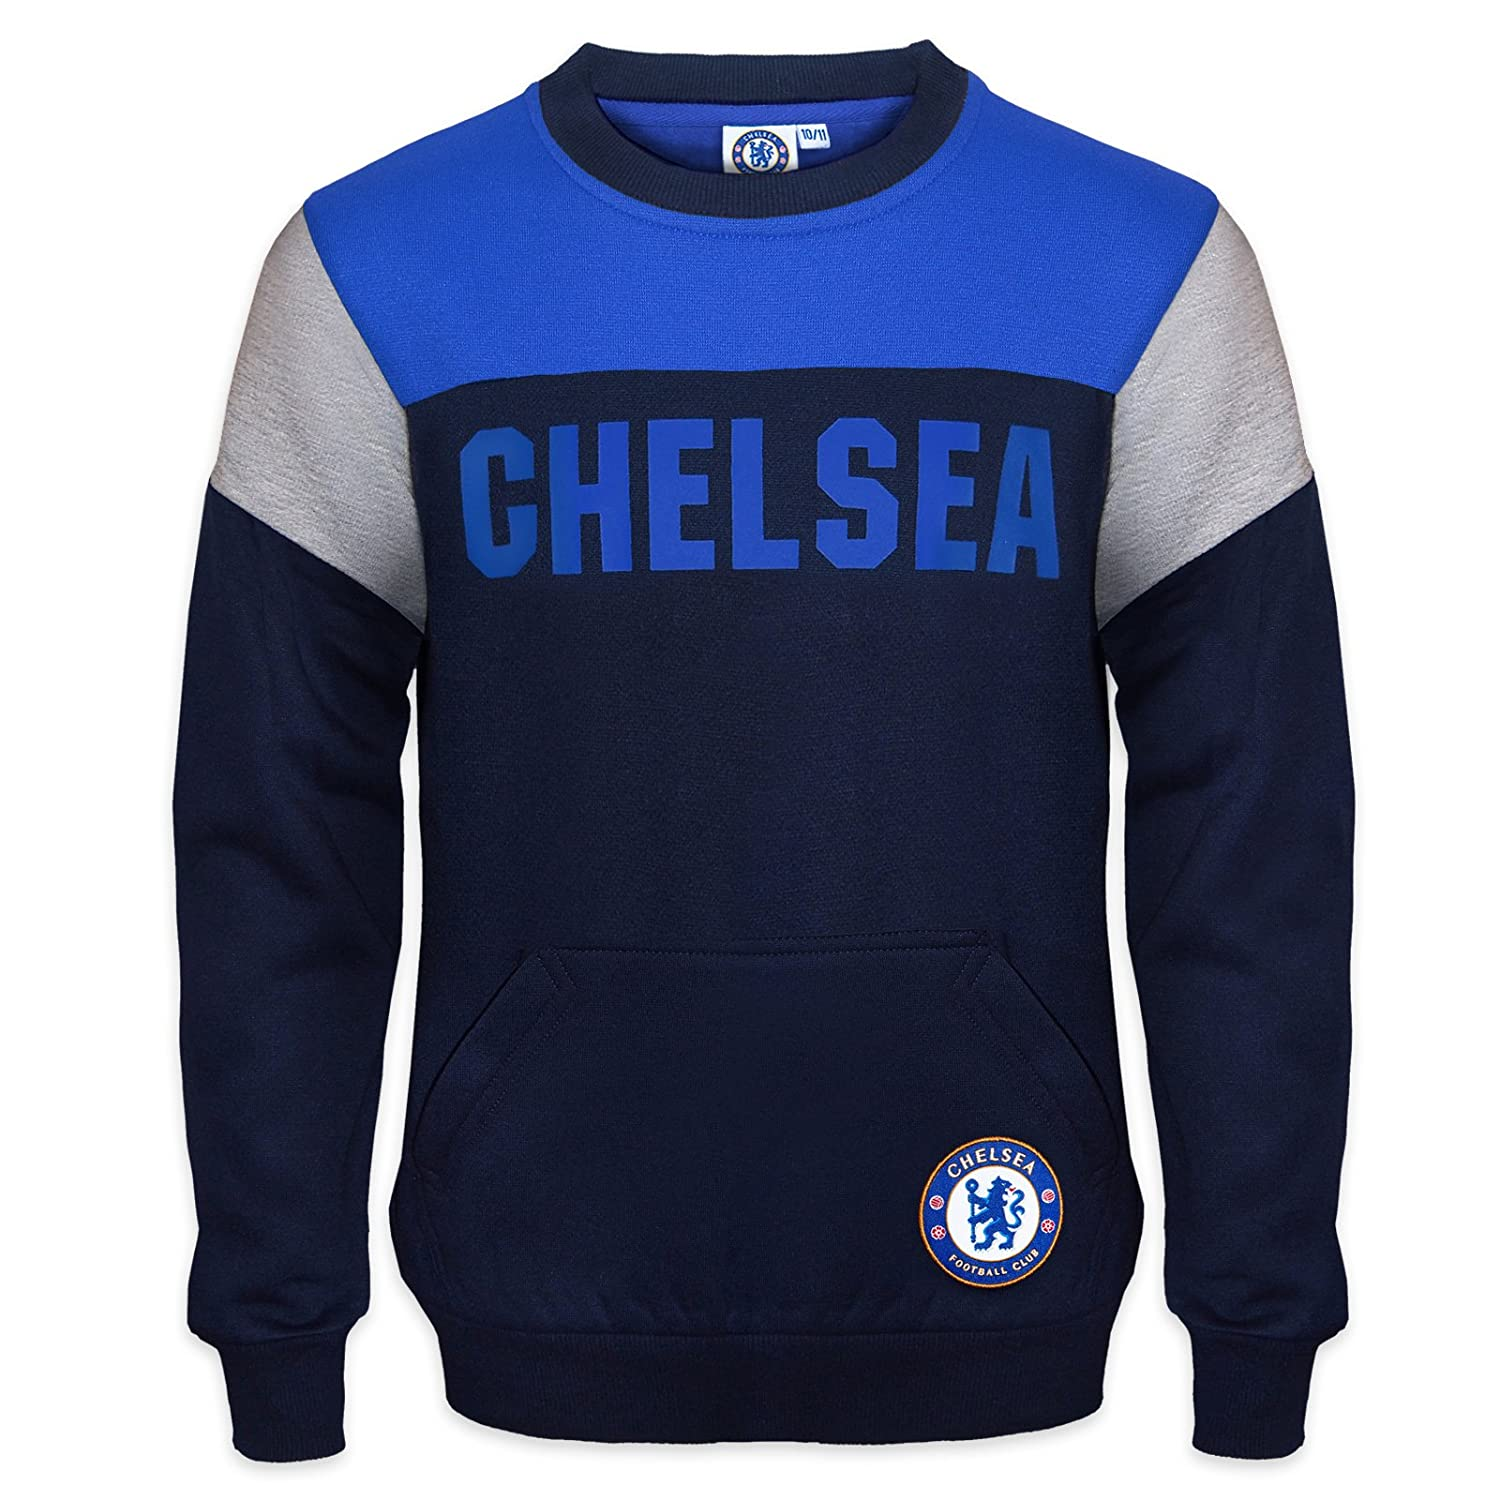 the best attitude d5976 12332 Chelsea FC Official Soccer Gift Boys Crest Sweatshirt Top Navy Blue